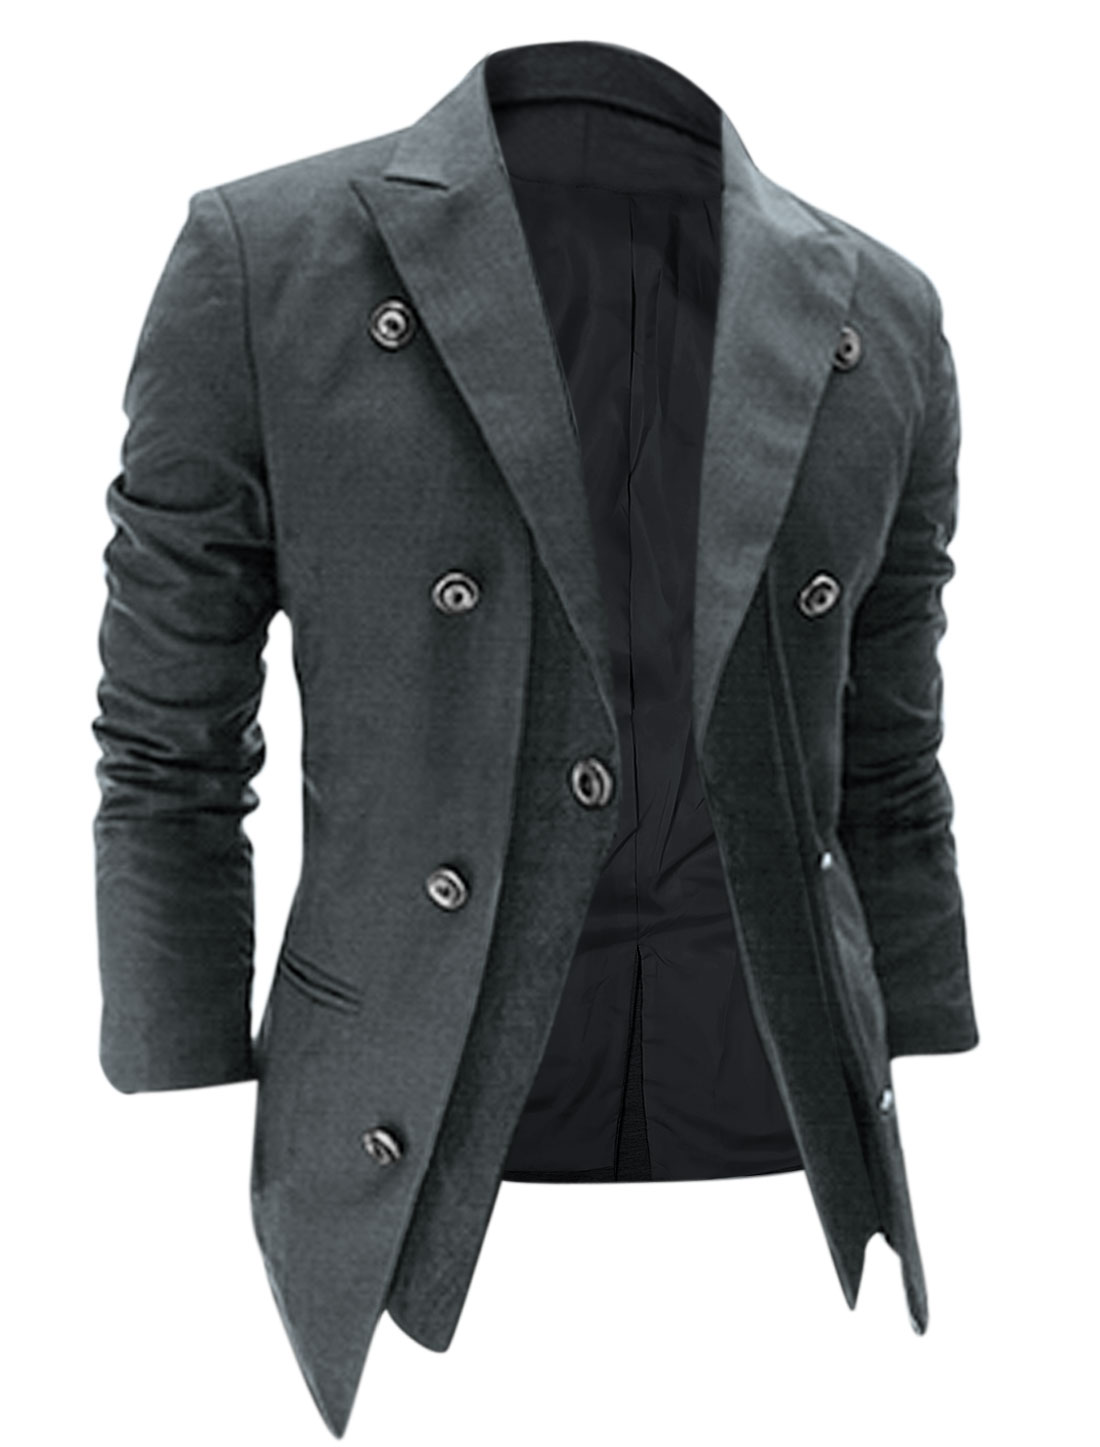 Men Peaked Lapel Padded Shoulder One Button Closure Blazer Jacket Gray M